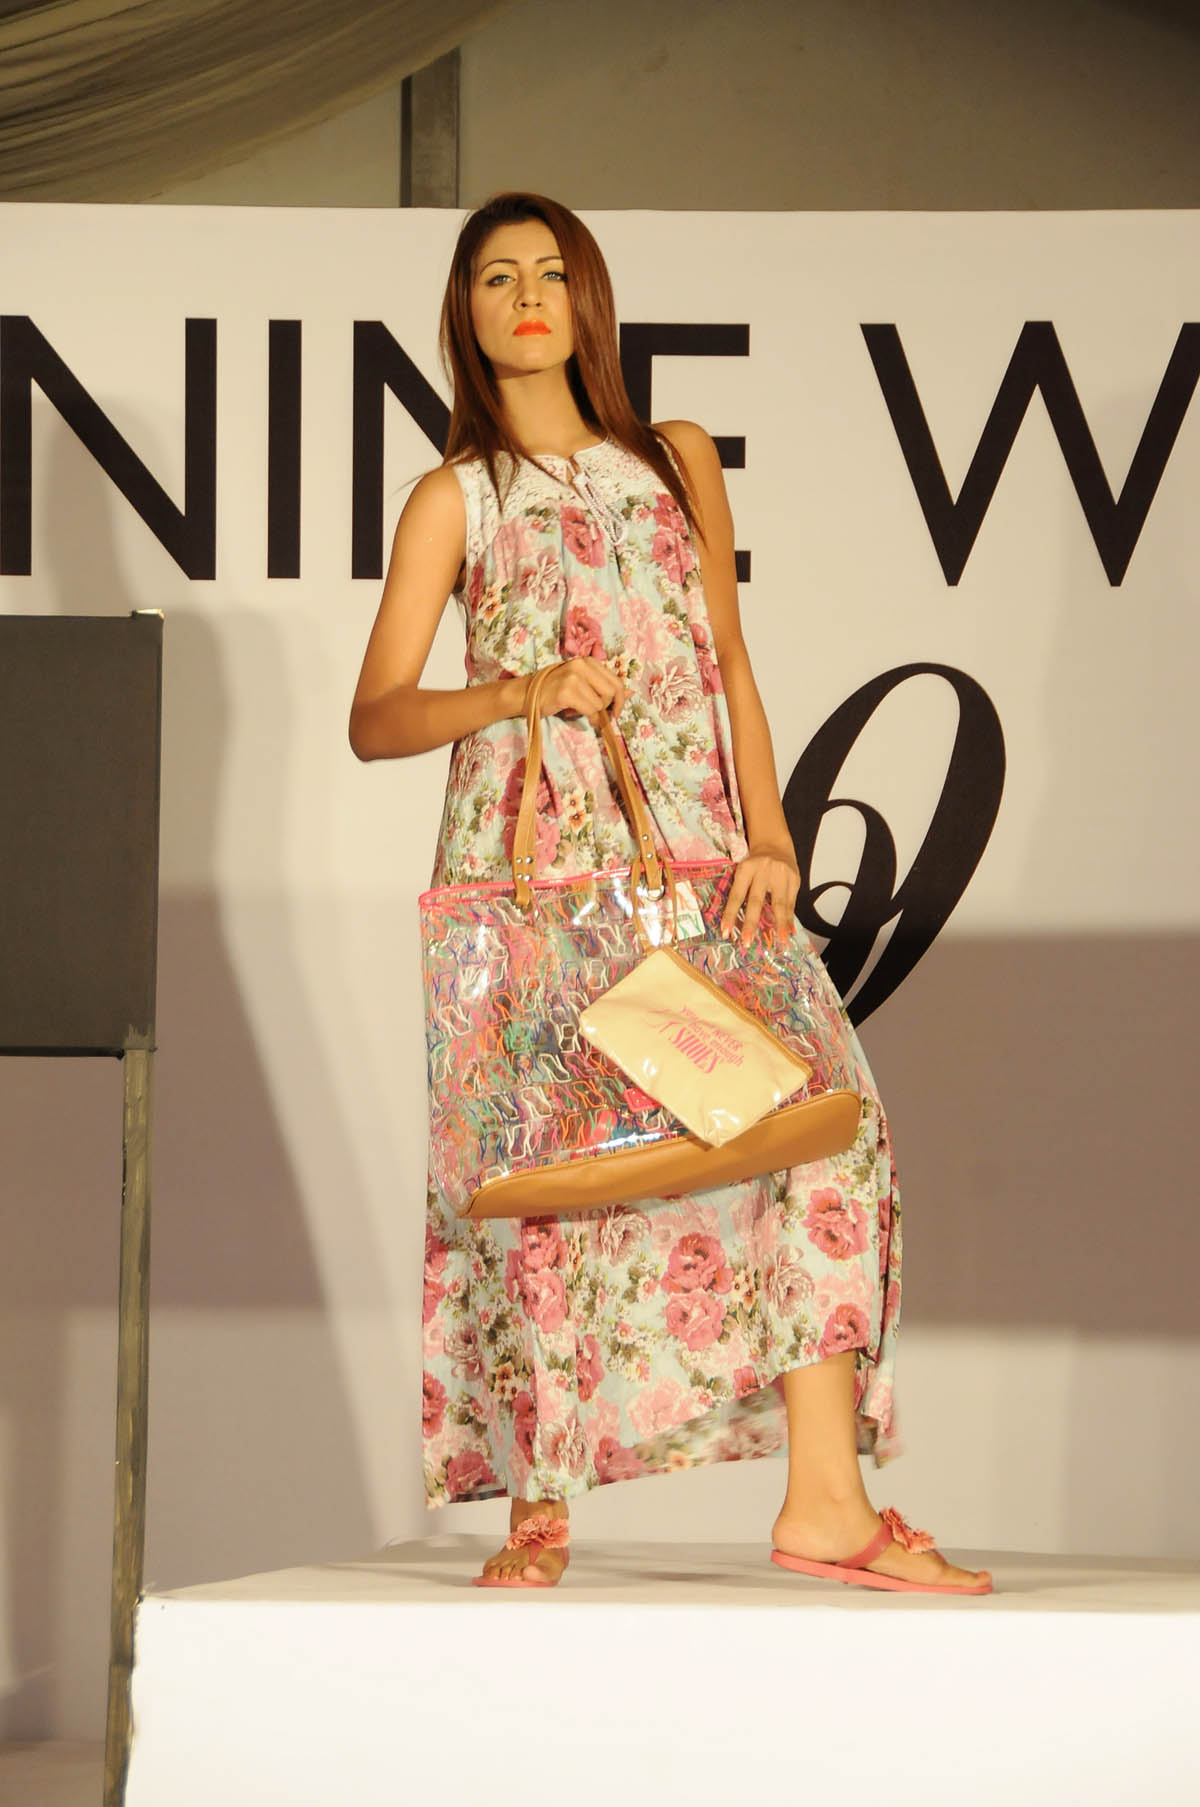 Nine West Shoes and bags Lahore launch